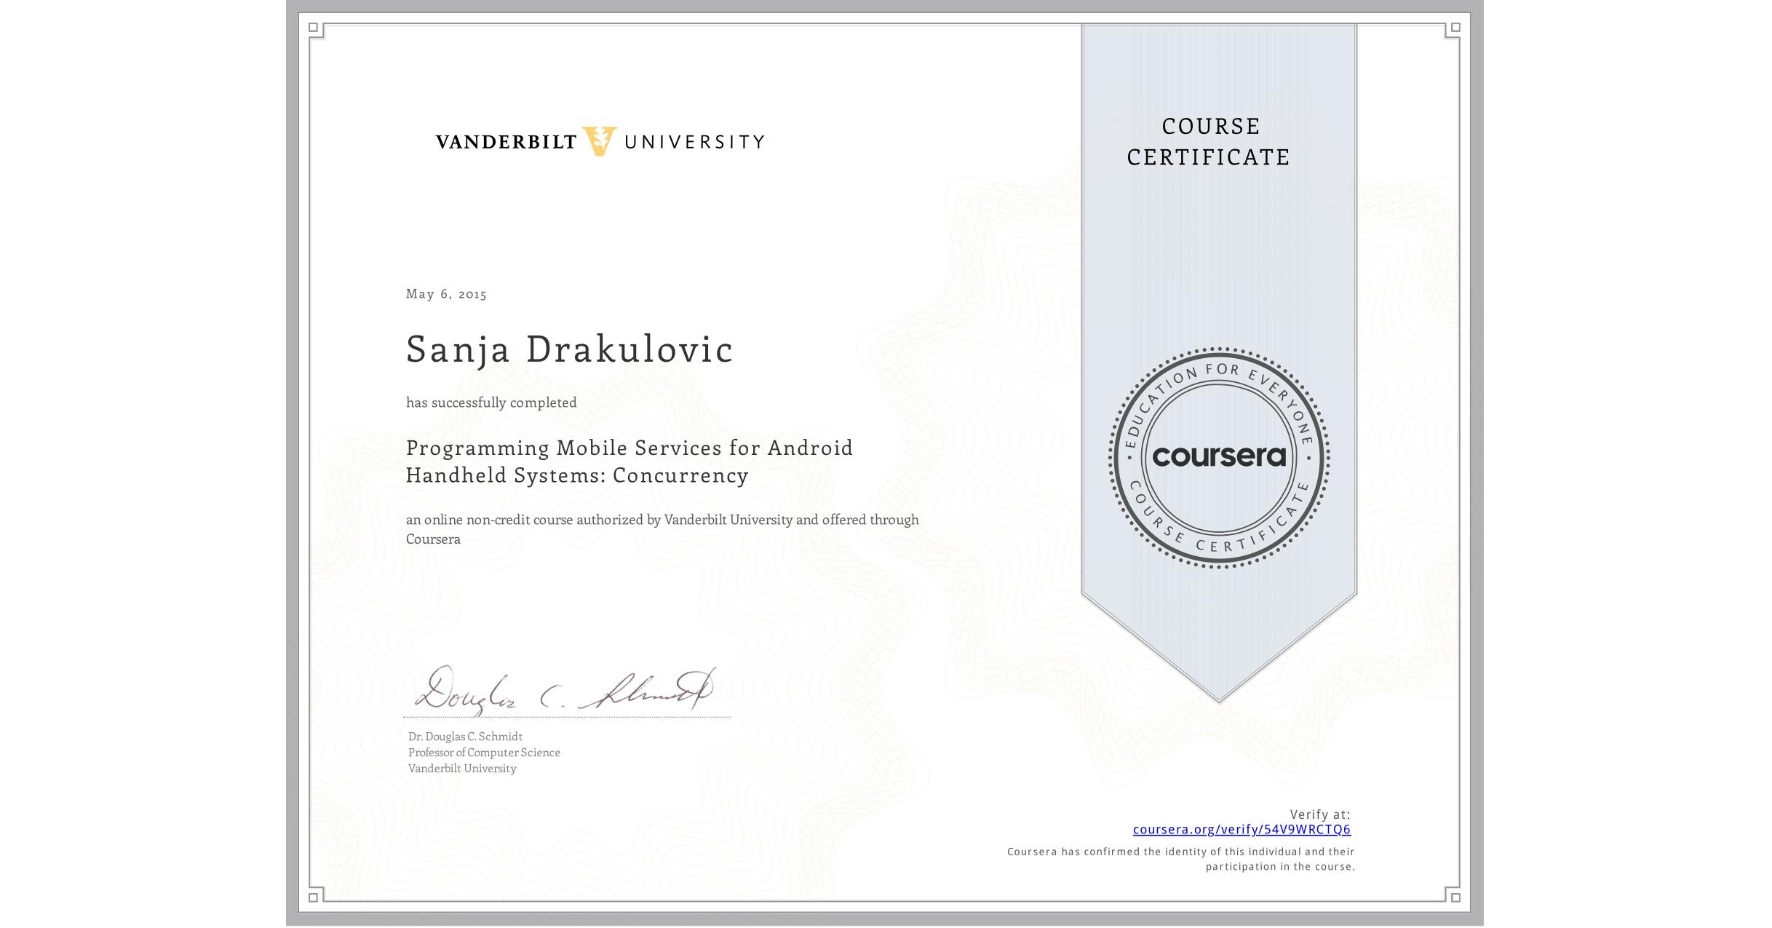 View certificate for Sanja Drakulovic, Programming Mobile Services for Android Handheld Systems: Concurrency, an online non-credit course authorized by Vanderbilt University and offered through Coursera